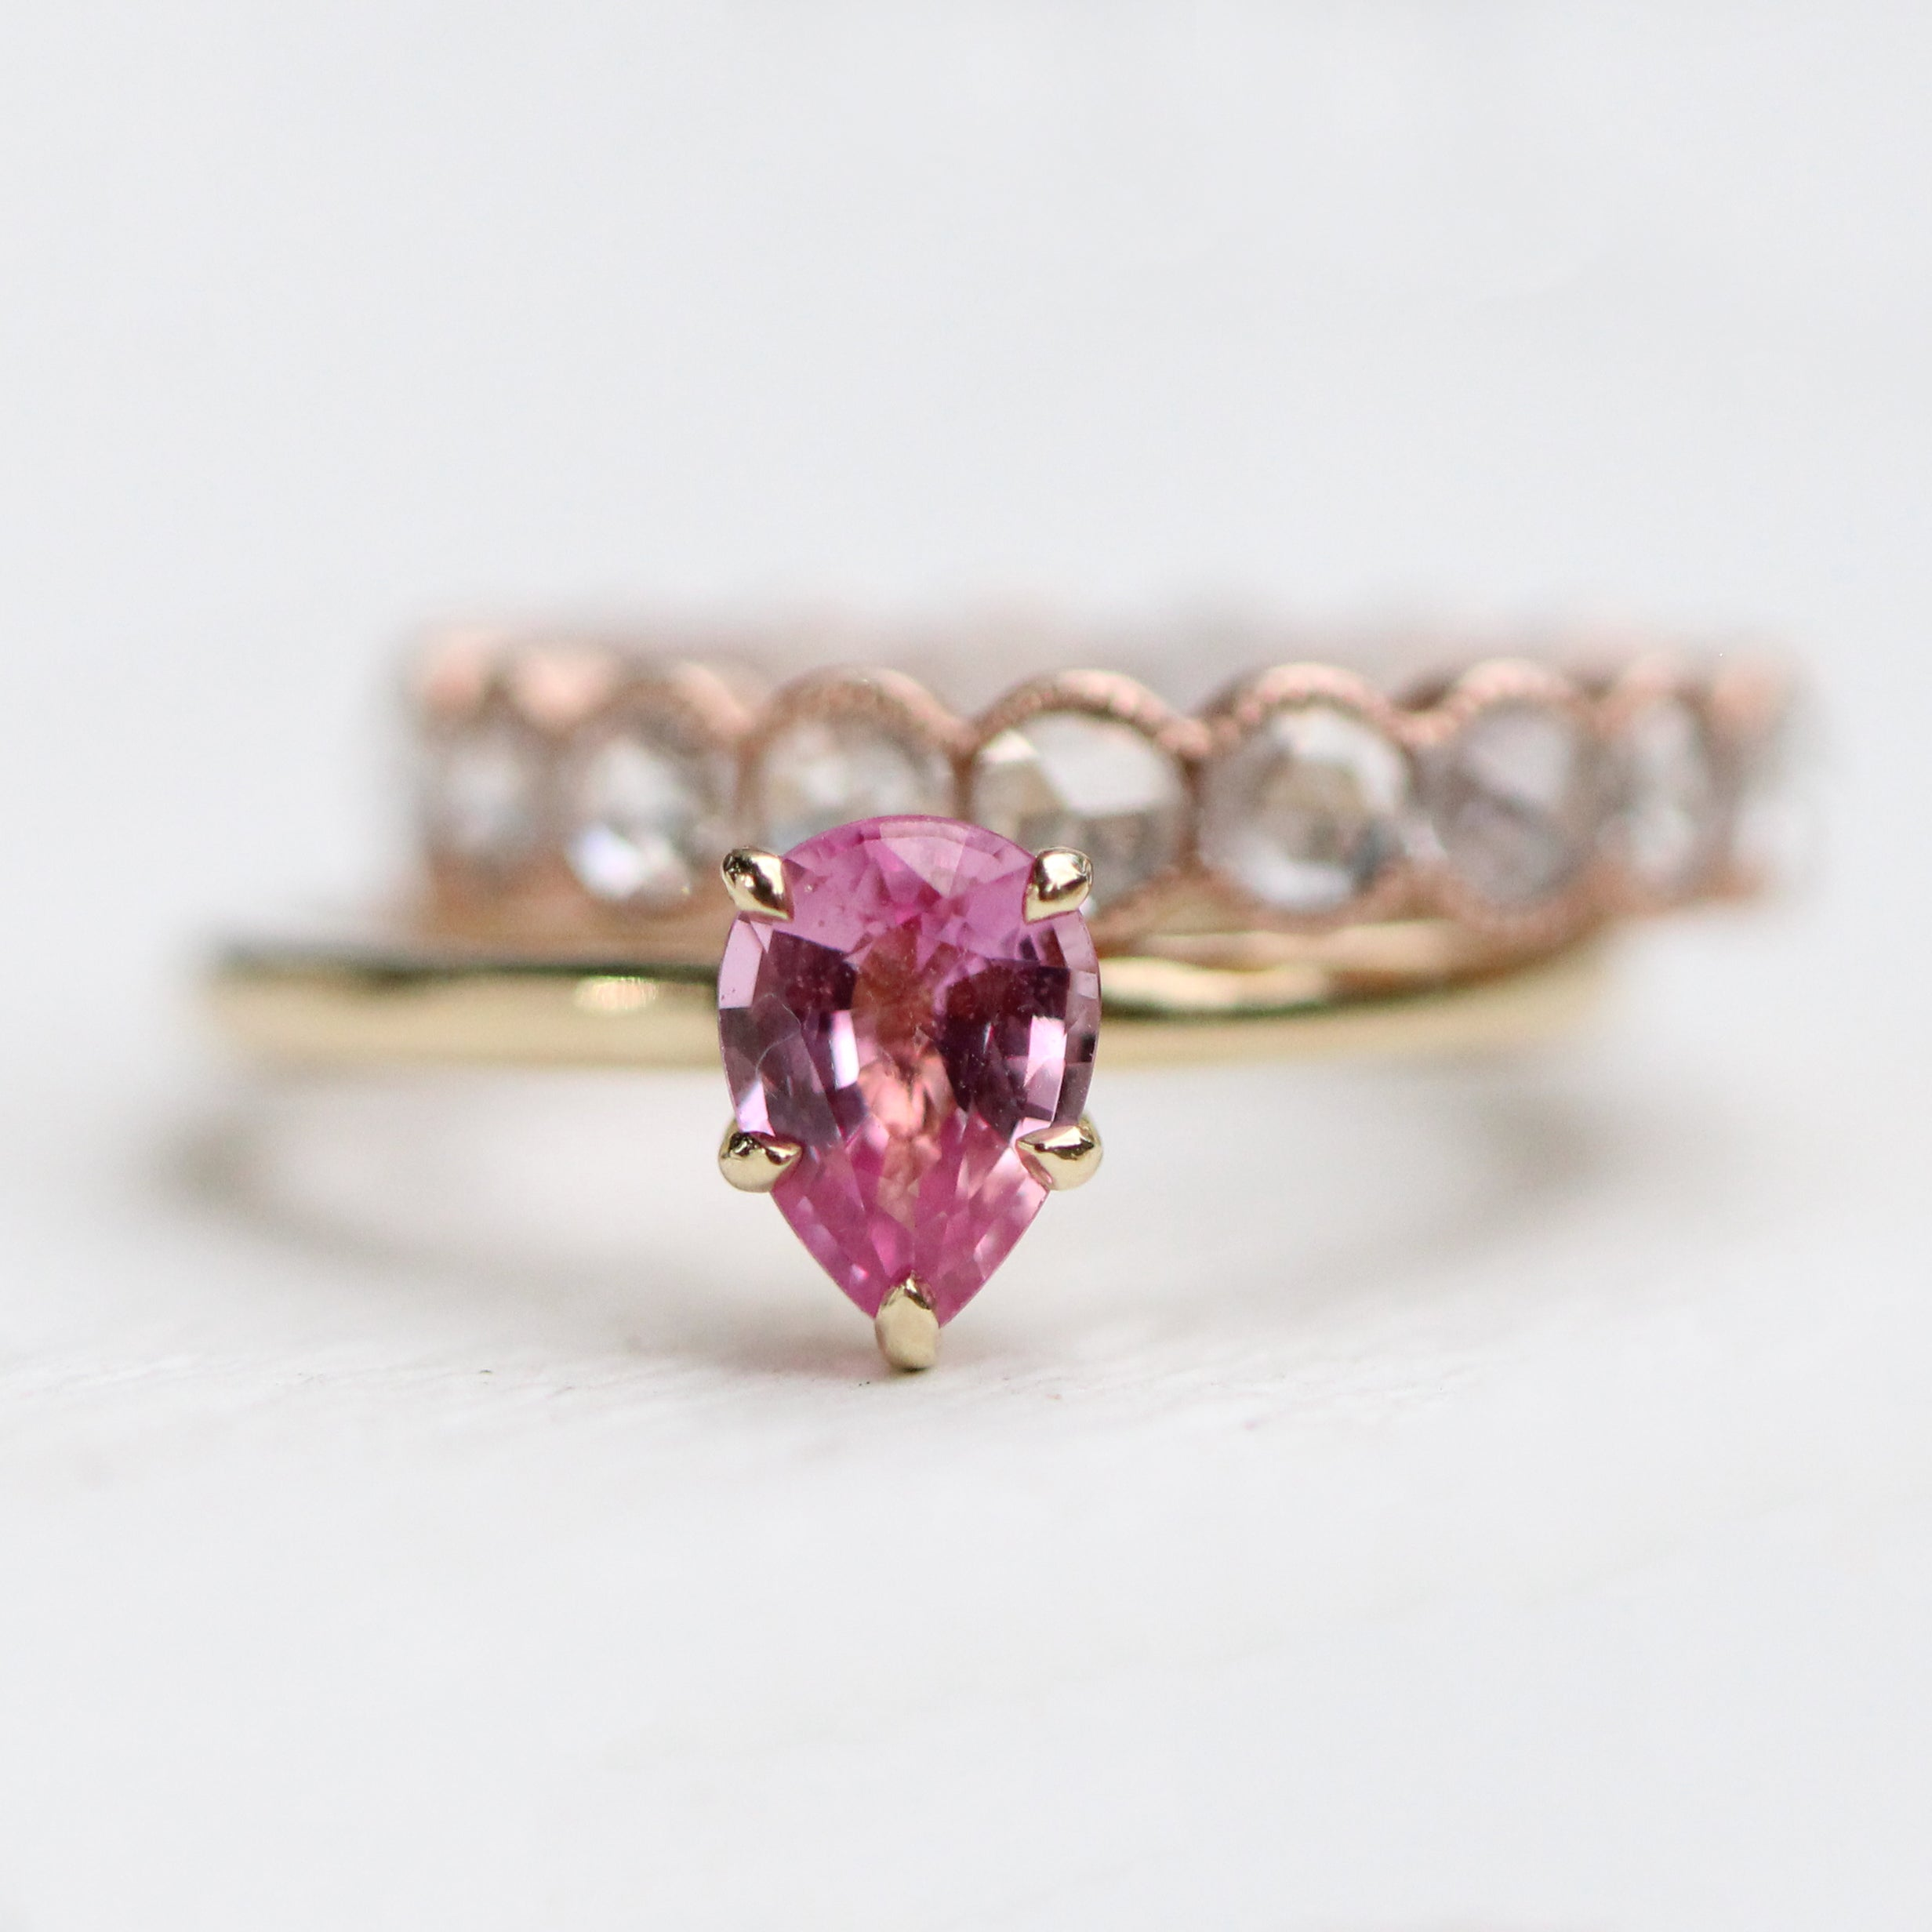 Charlotte Ring with a .85 ct pink Sapphire in 14k Yellow Gold - Ready to Size and Ship - Midwinter Co. Alternative Bridal Rings and Modern Fine Jewelry